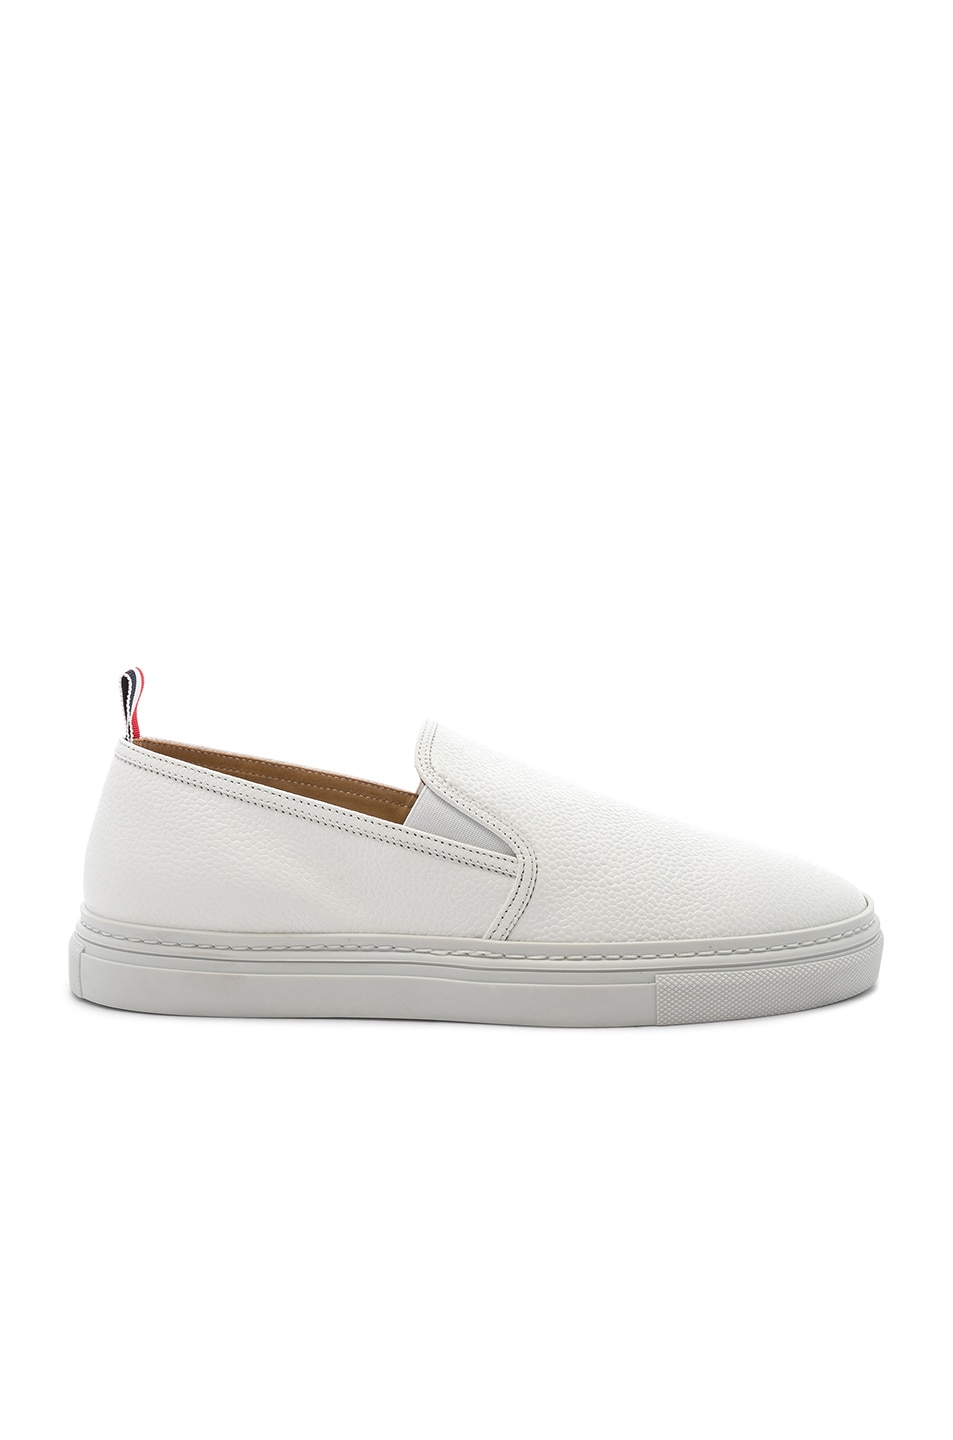 Image 2 of Thom Browne Slip On Trainer in White